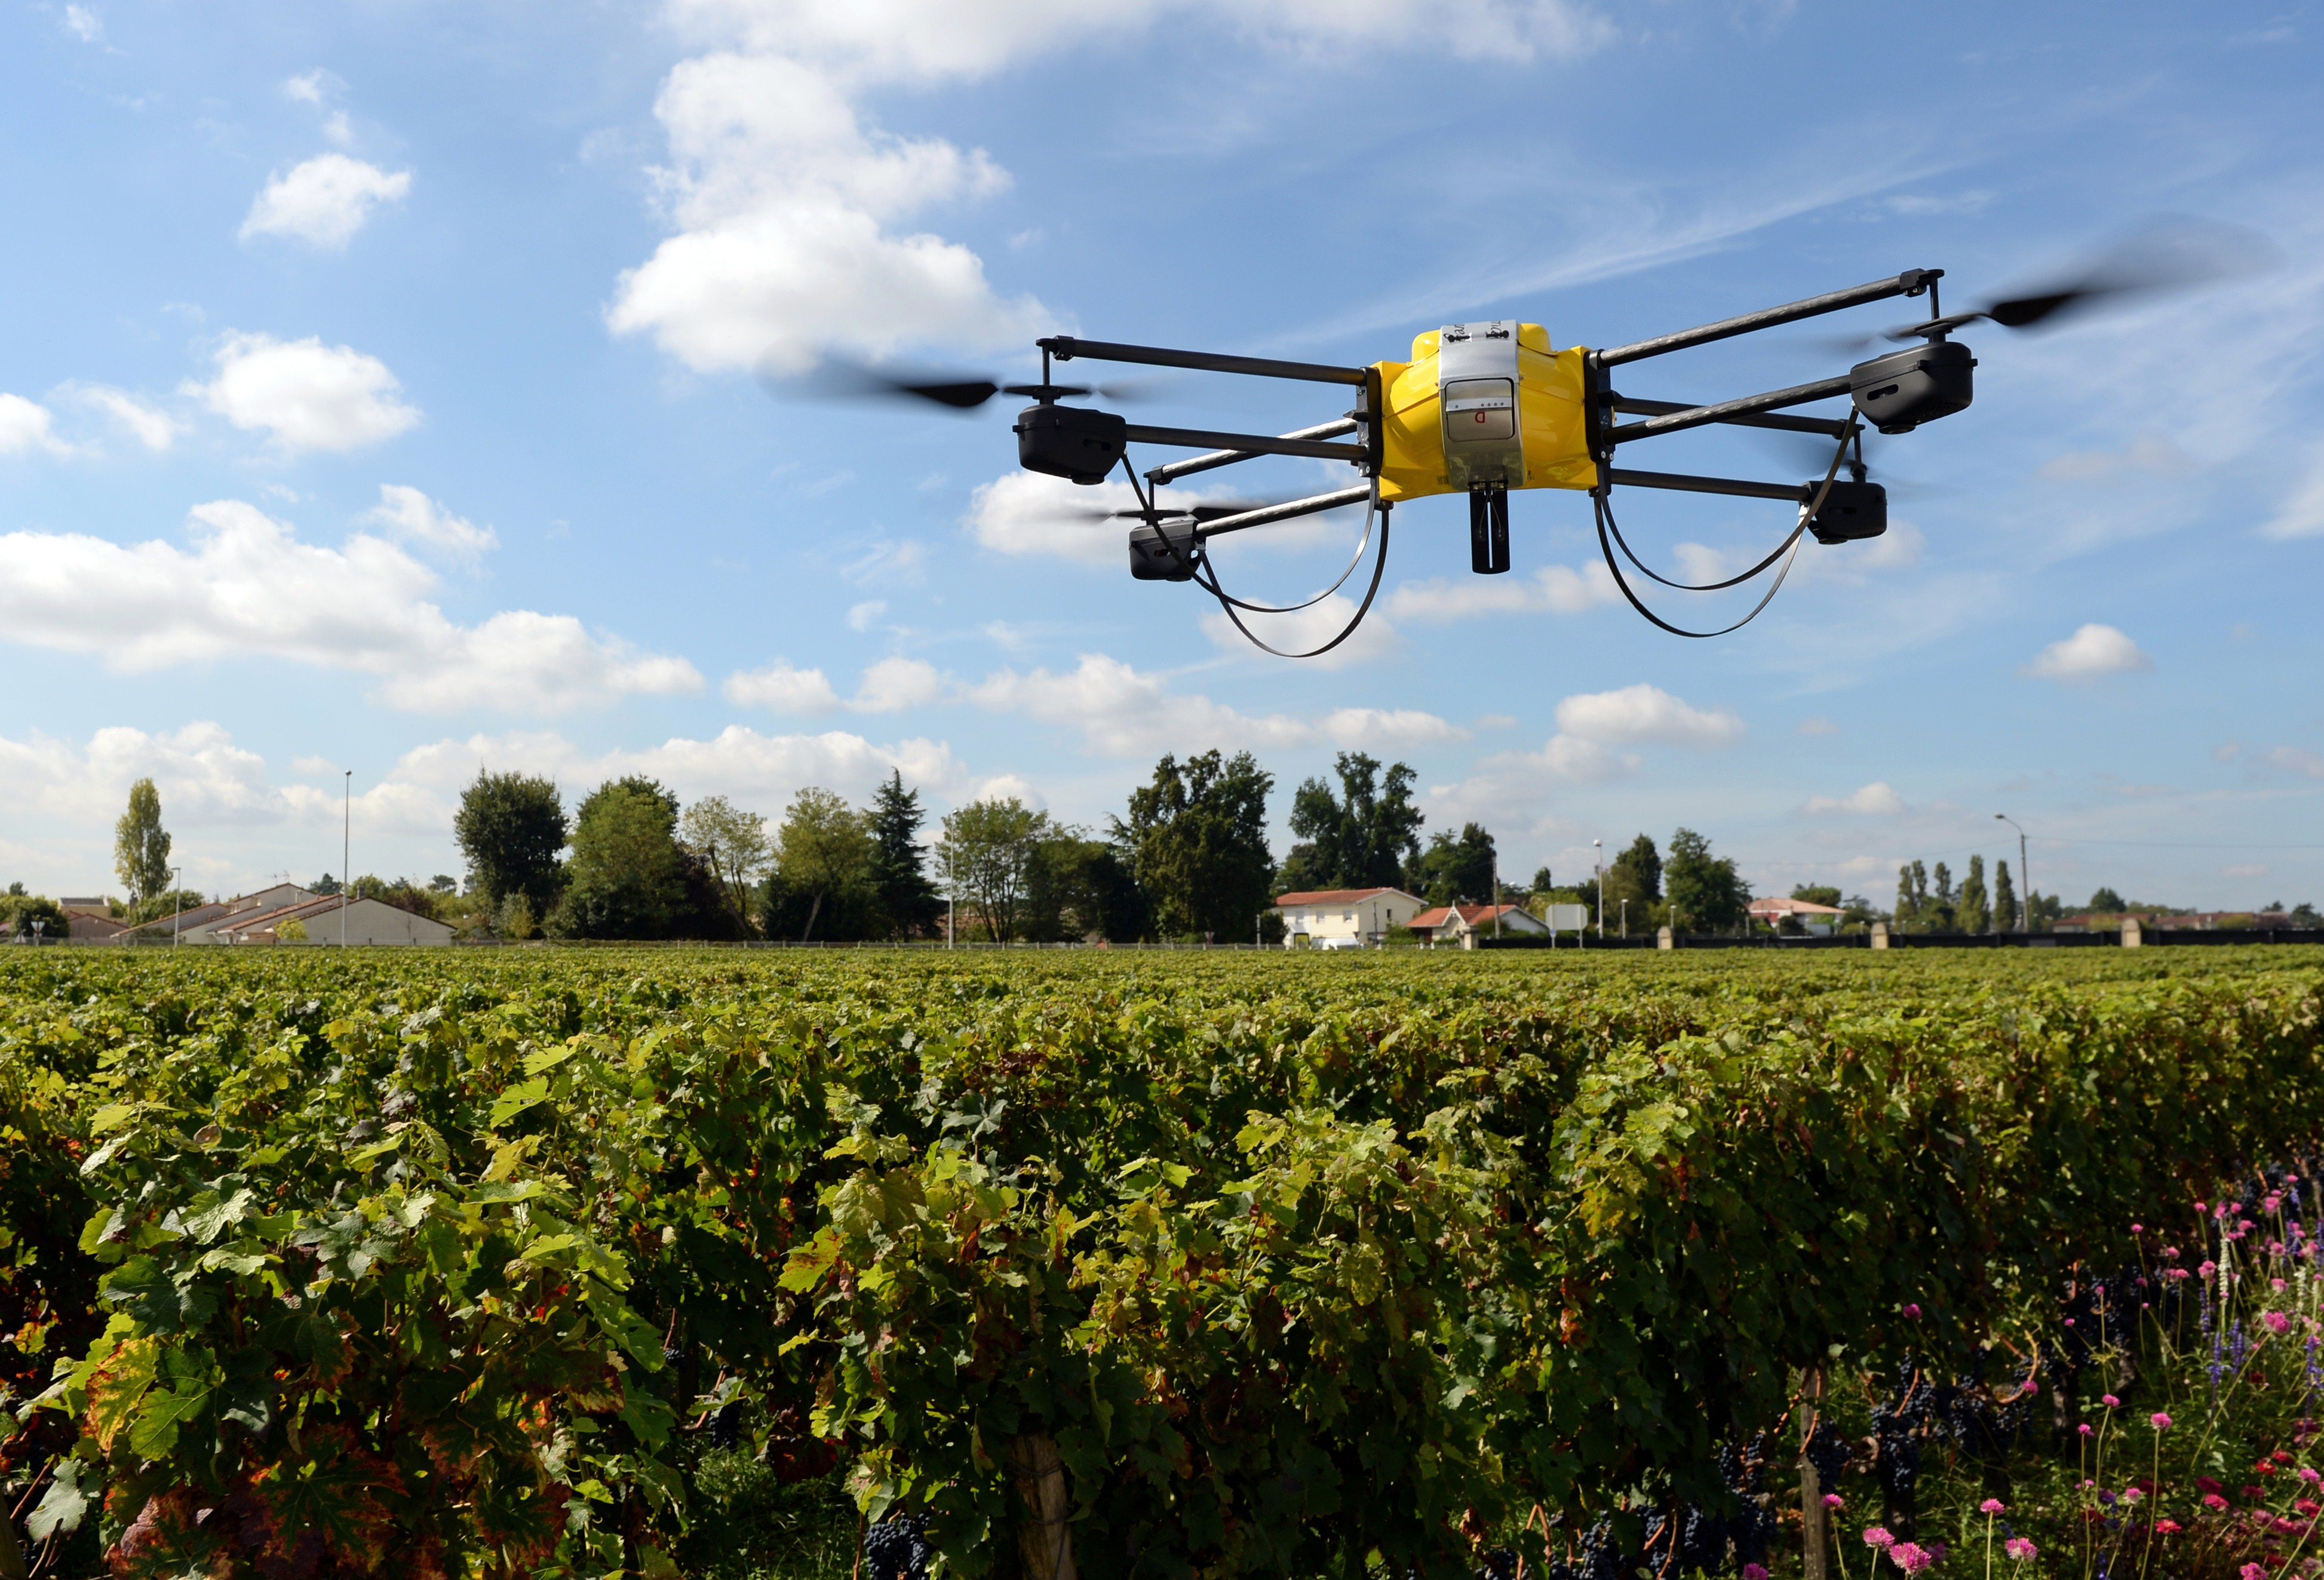 How to learn mapping and agriculture for drones